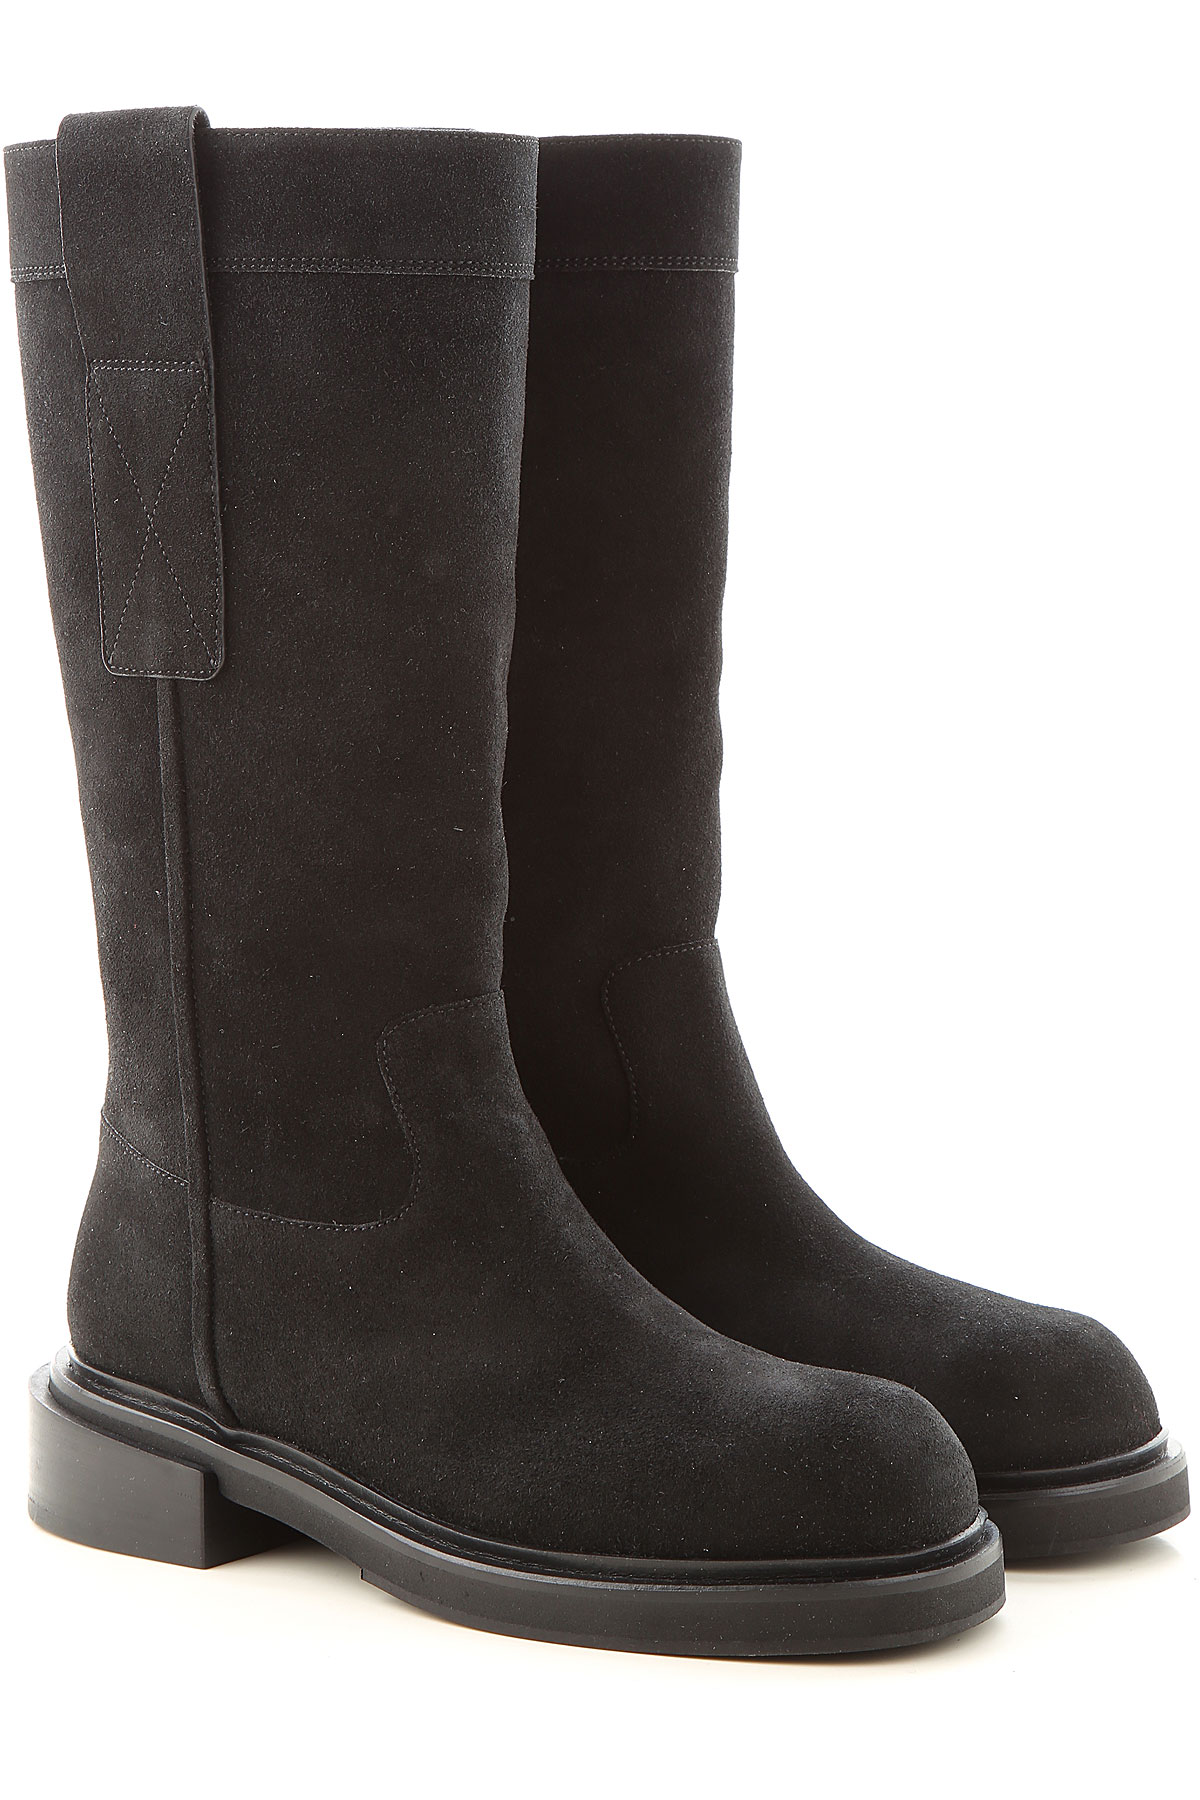 Lella Baldi Boots for Women, Booties On Sale, Black, Suede leather, 2019, 10 7 8 9